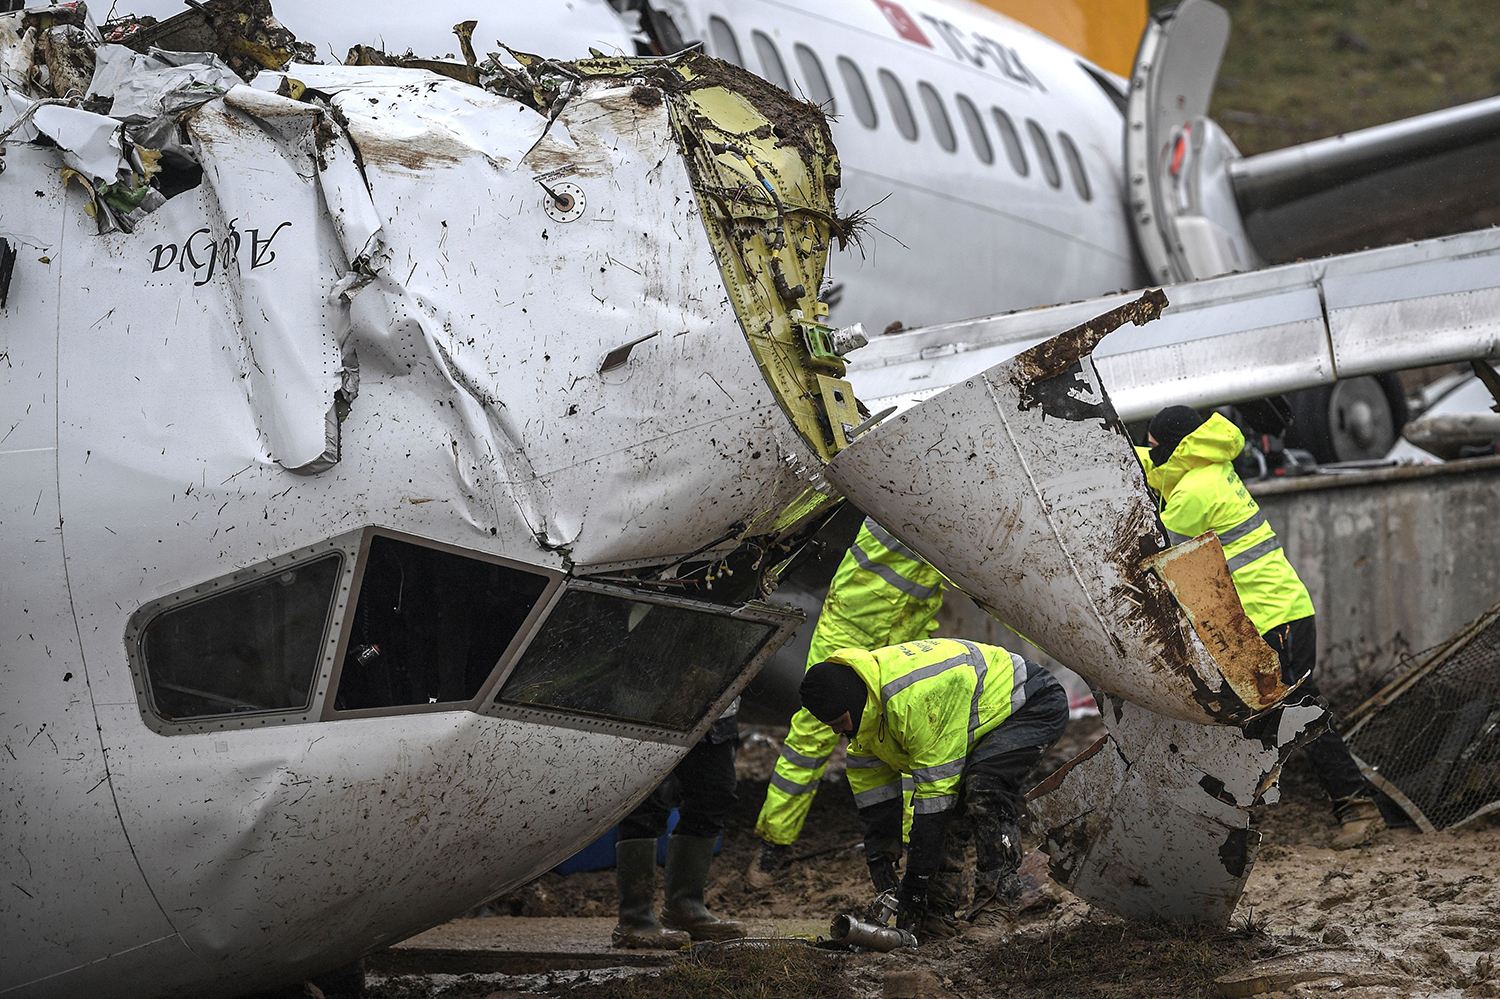 Turkish Pegasus airline members inspect the wreckage of the Pegasus Airlines Boeing 737 airplane that skidded off the runway upon landing at the Sabiha Gokcen airport, in Istanbul, on Feb. 6. Three people died and 179 were injured when the plane caught fire and split into three after landing in rough weather. OZAN KOSE/AFP via Getty Images